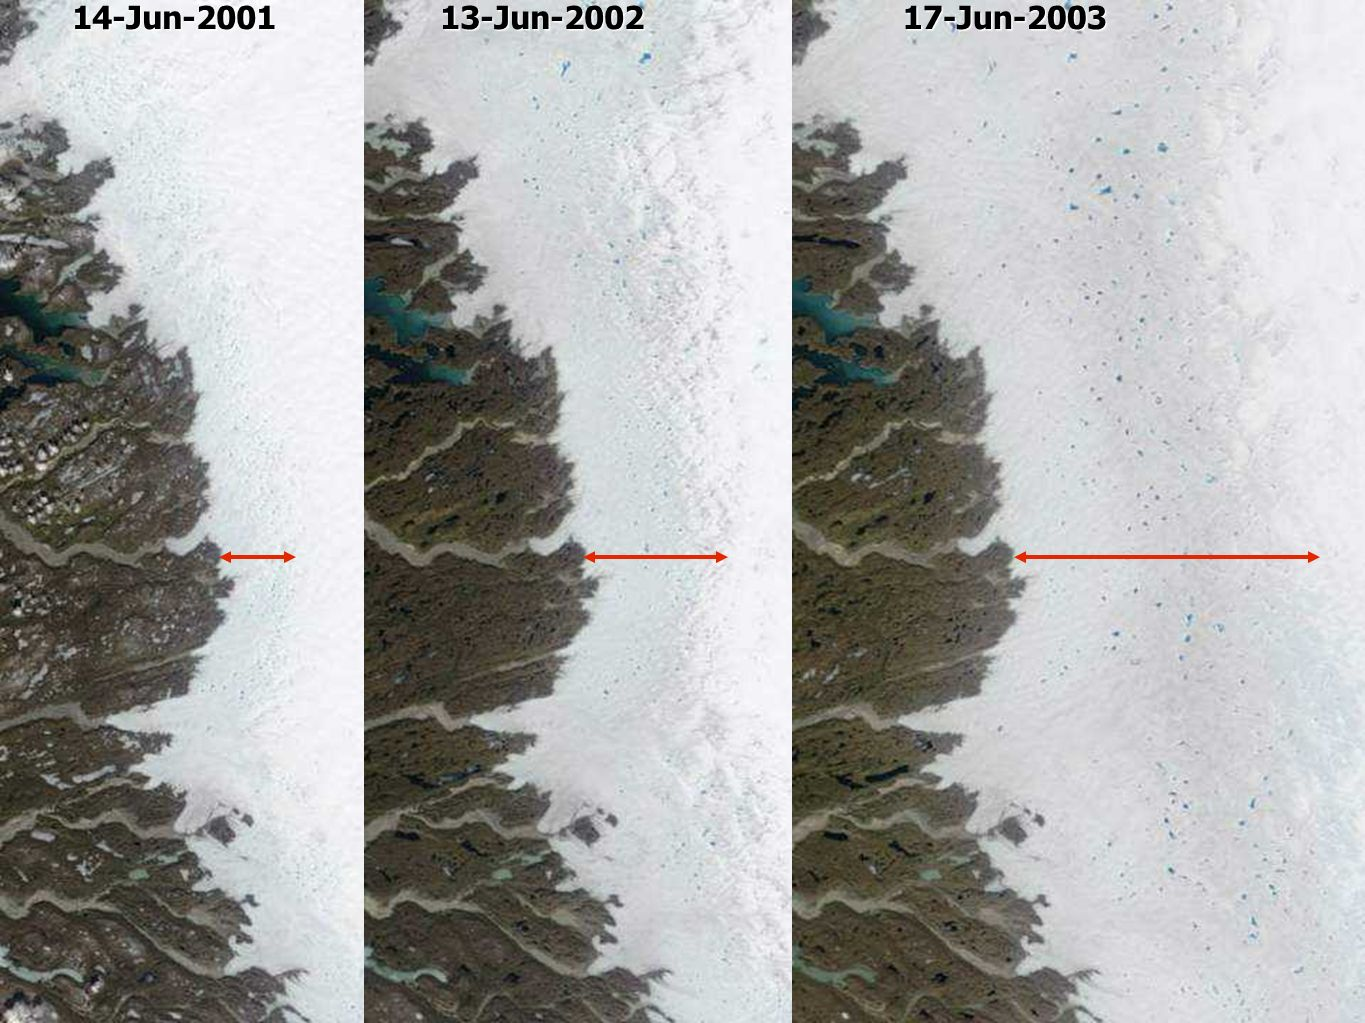 14-Jun-2001 13-Jun-2002. 17-Jun-2003. Satellite images reveal a widening melt area in early summer each year.